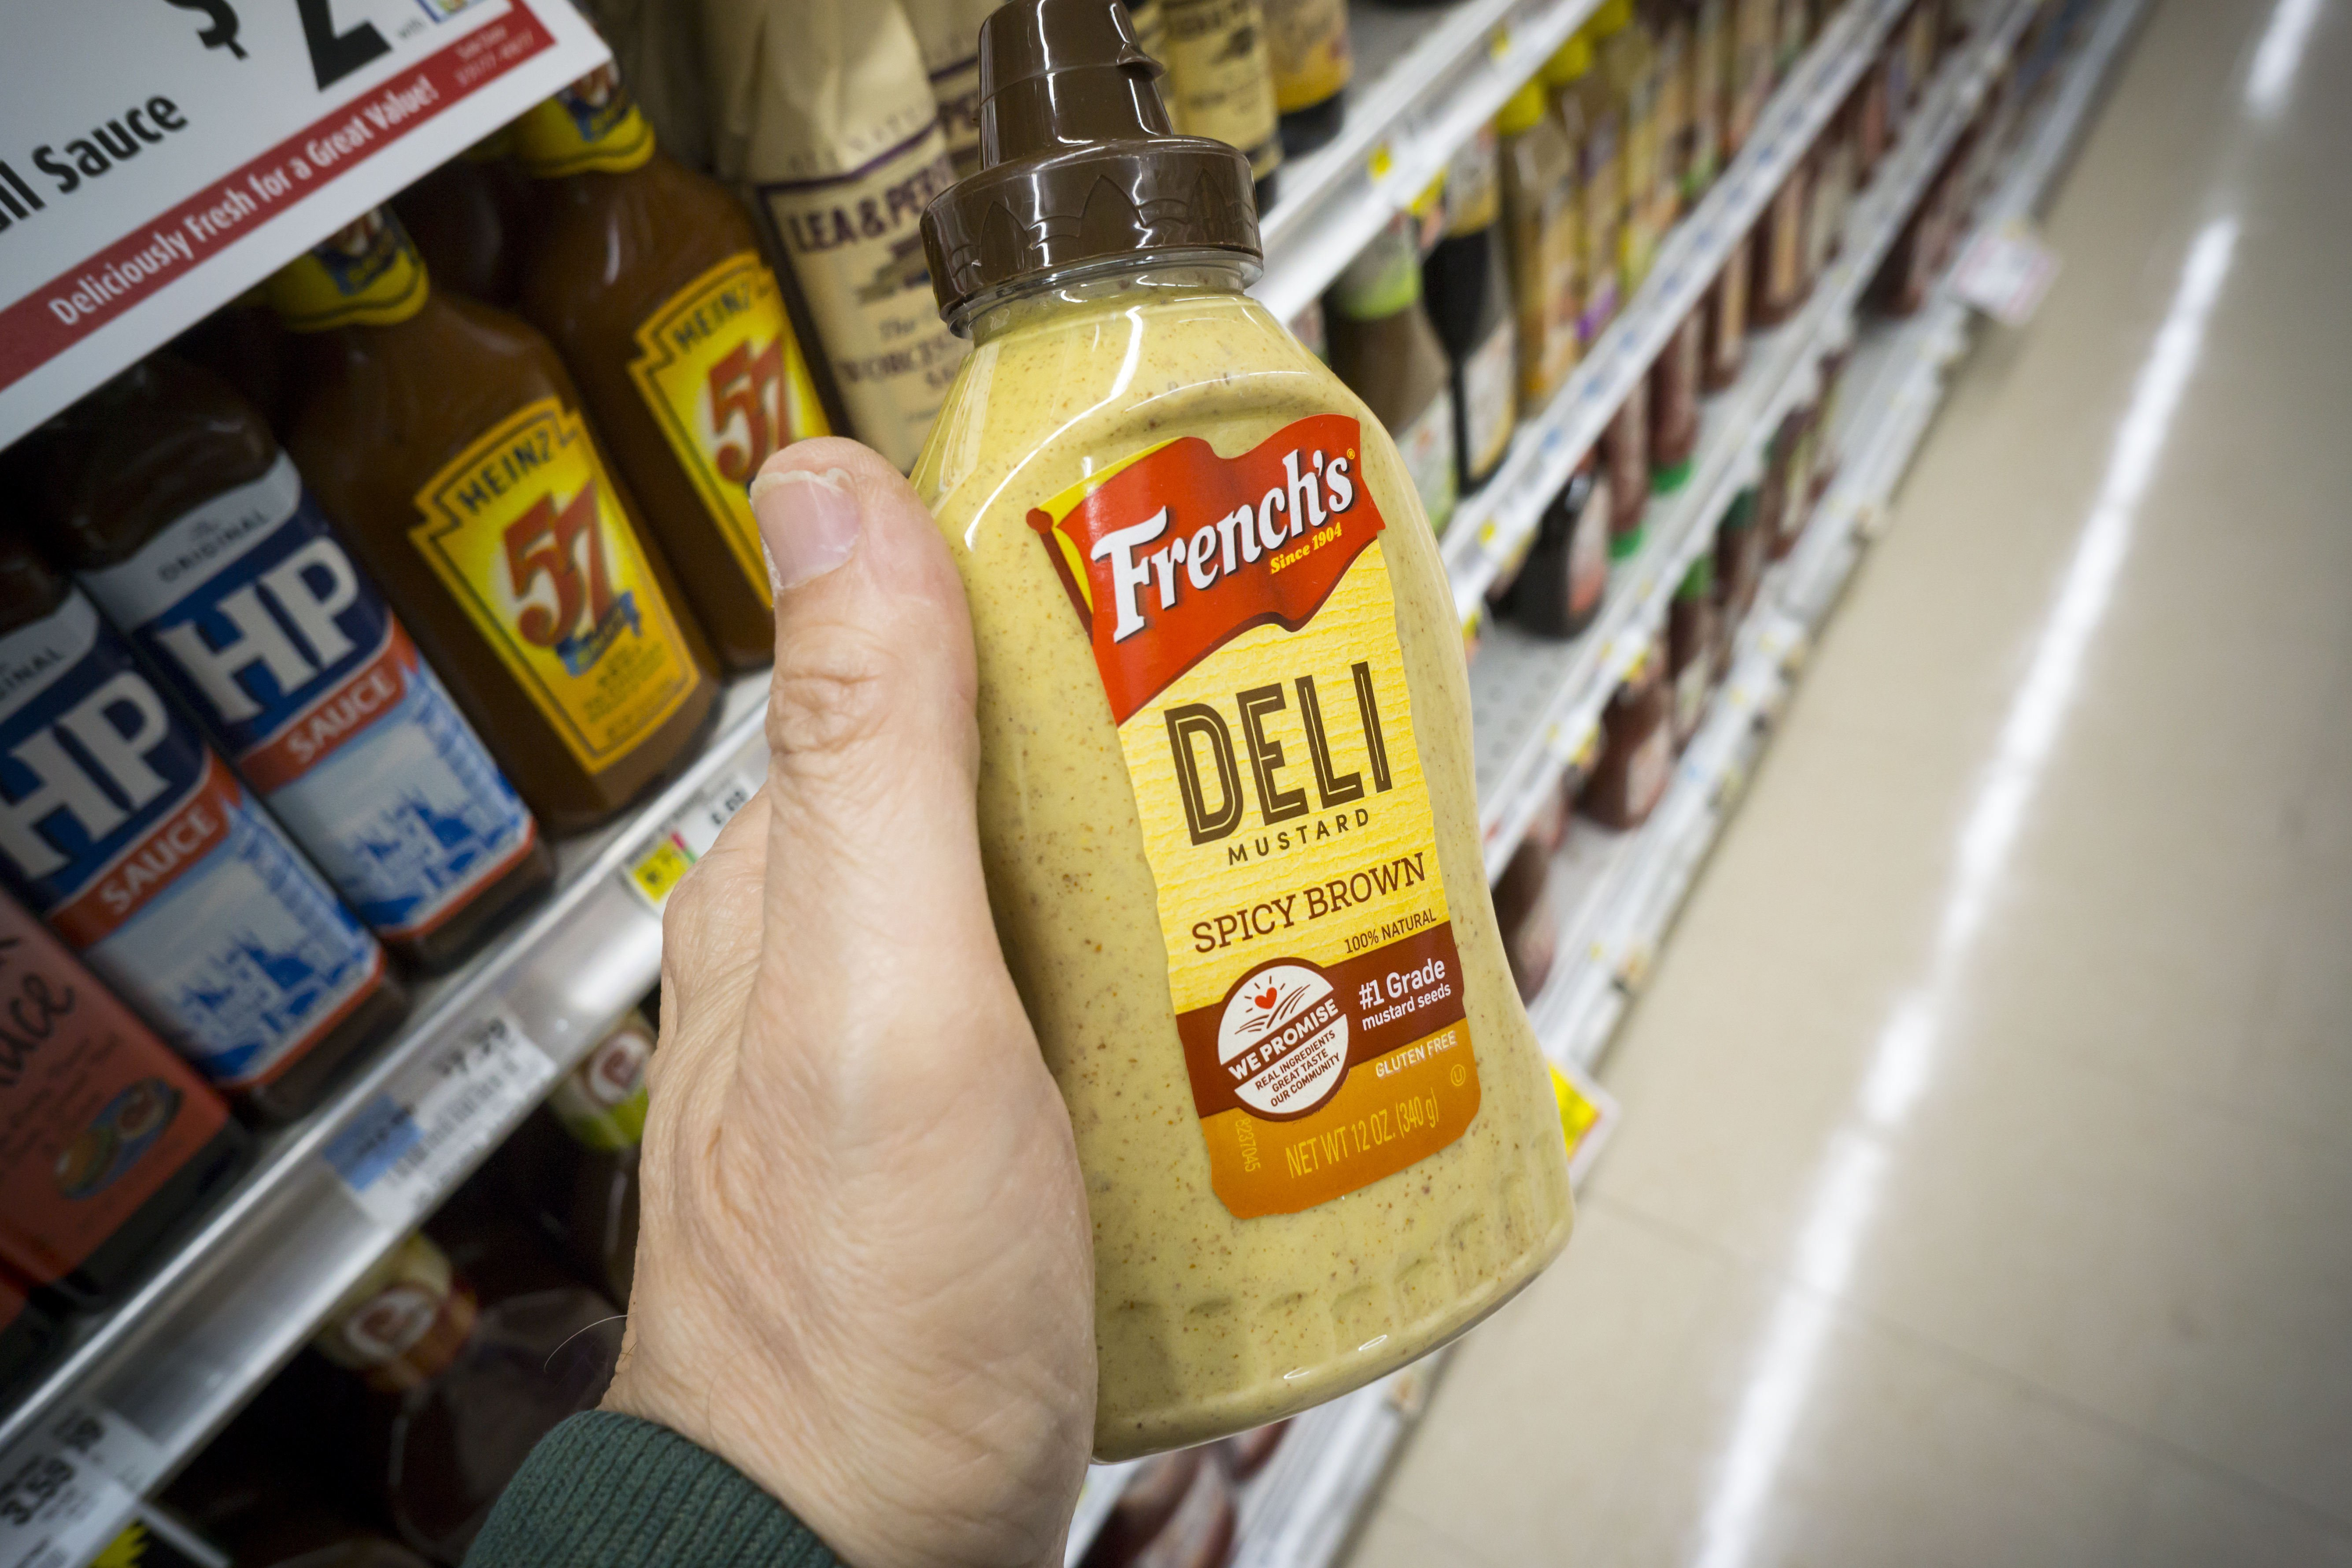 Spice Maker McCormick Adds French's Mustard to Its Shelf in $4 ...